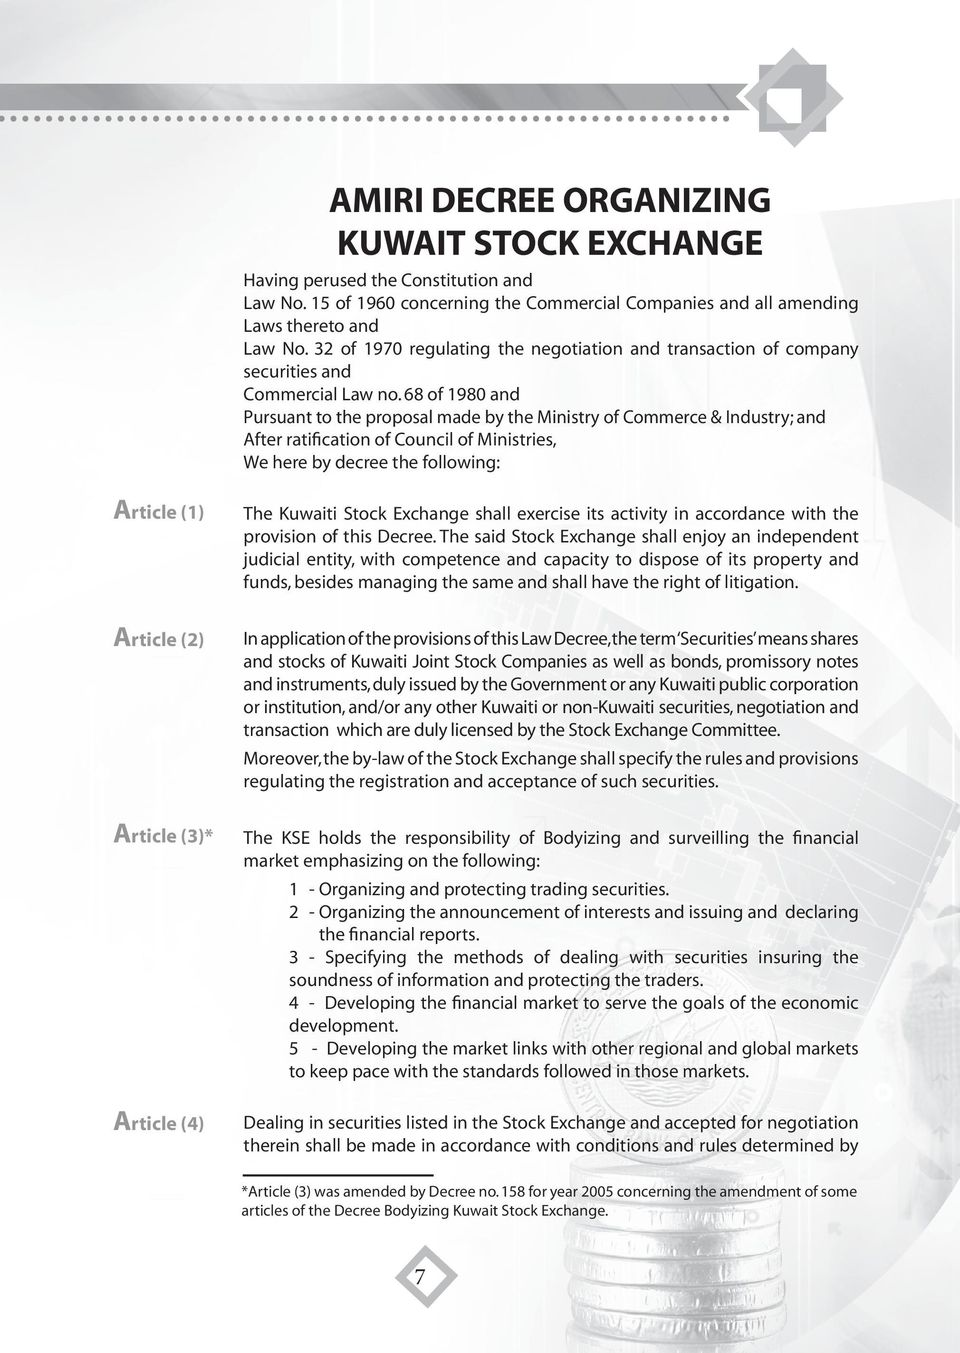 68 of 1980 and Pursuant to the proposal made by the Ministry of Commerce & Industry; and After ratification of Council of Ministries, We here by decree the following: Article (1) The Kuwaiti Stock